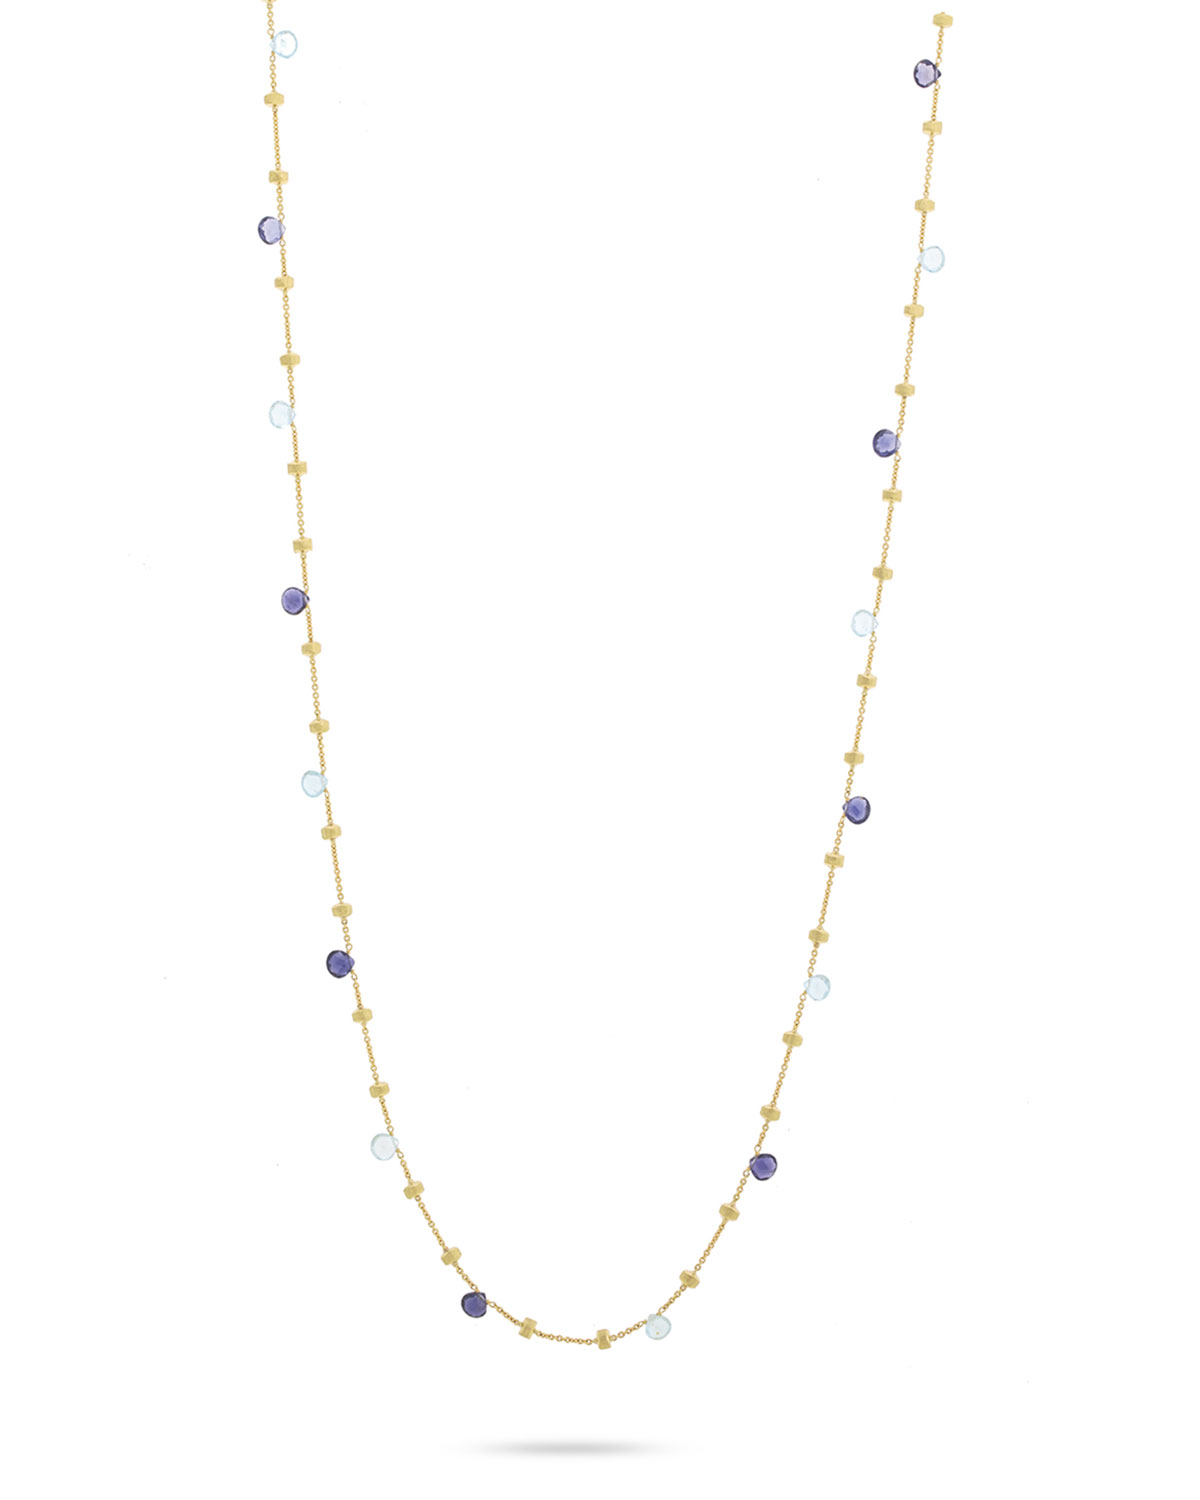 Marco Bicego Paradise 18k Blue Topaz Long Necklace